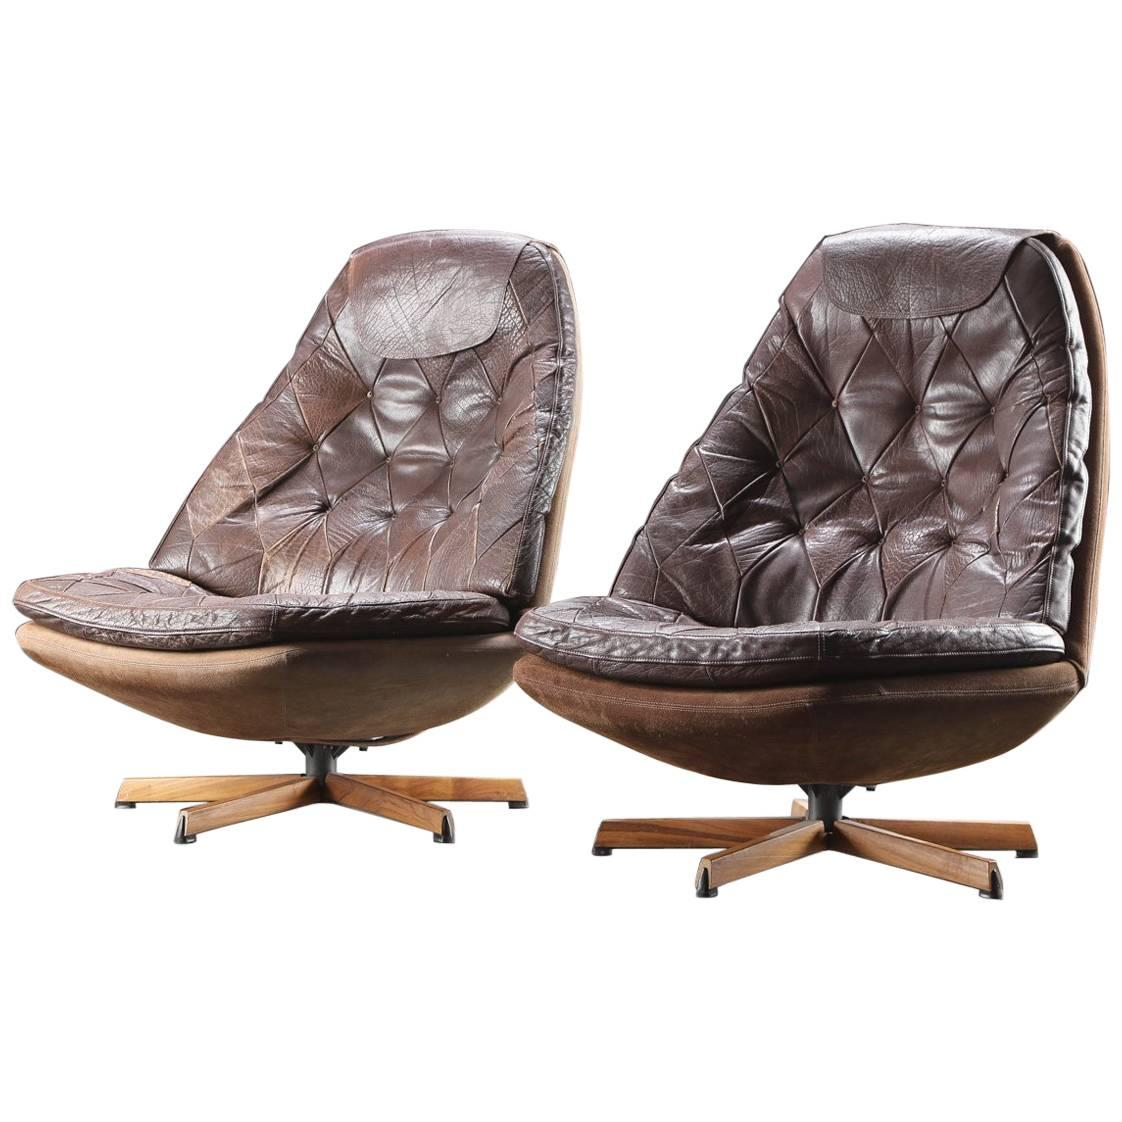 Upholstered Swivel Chairs Pair Of Danish Leather Upholstered Swivel Chairs By Madsen Schubell